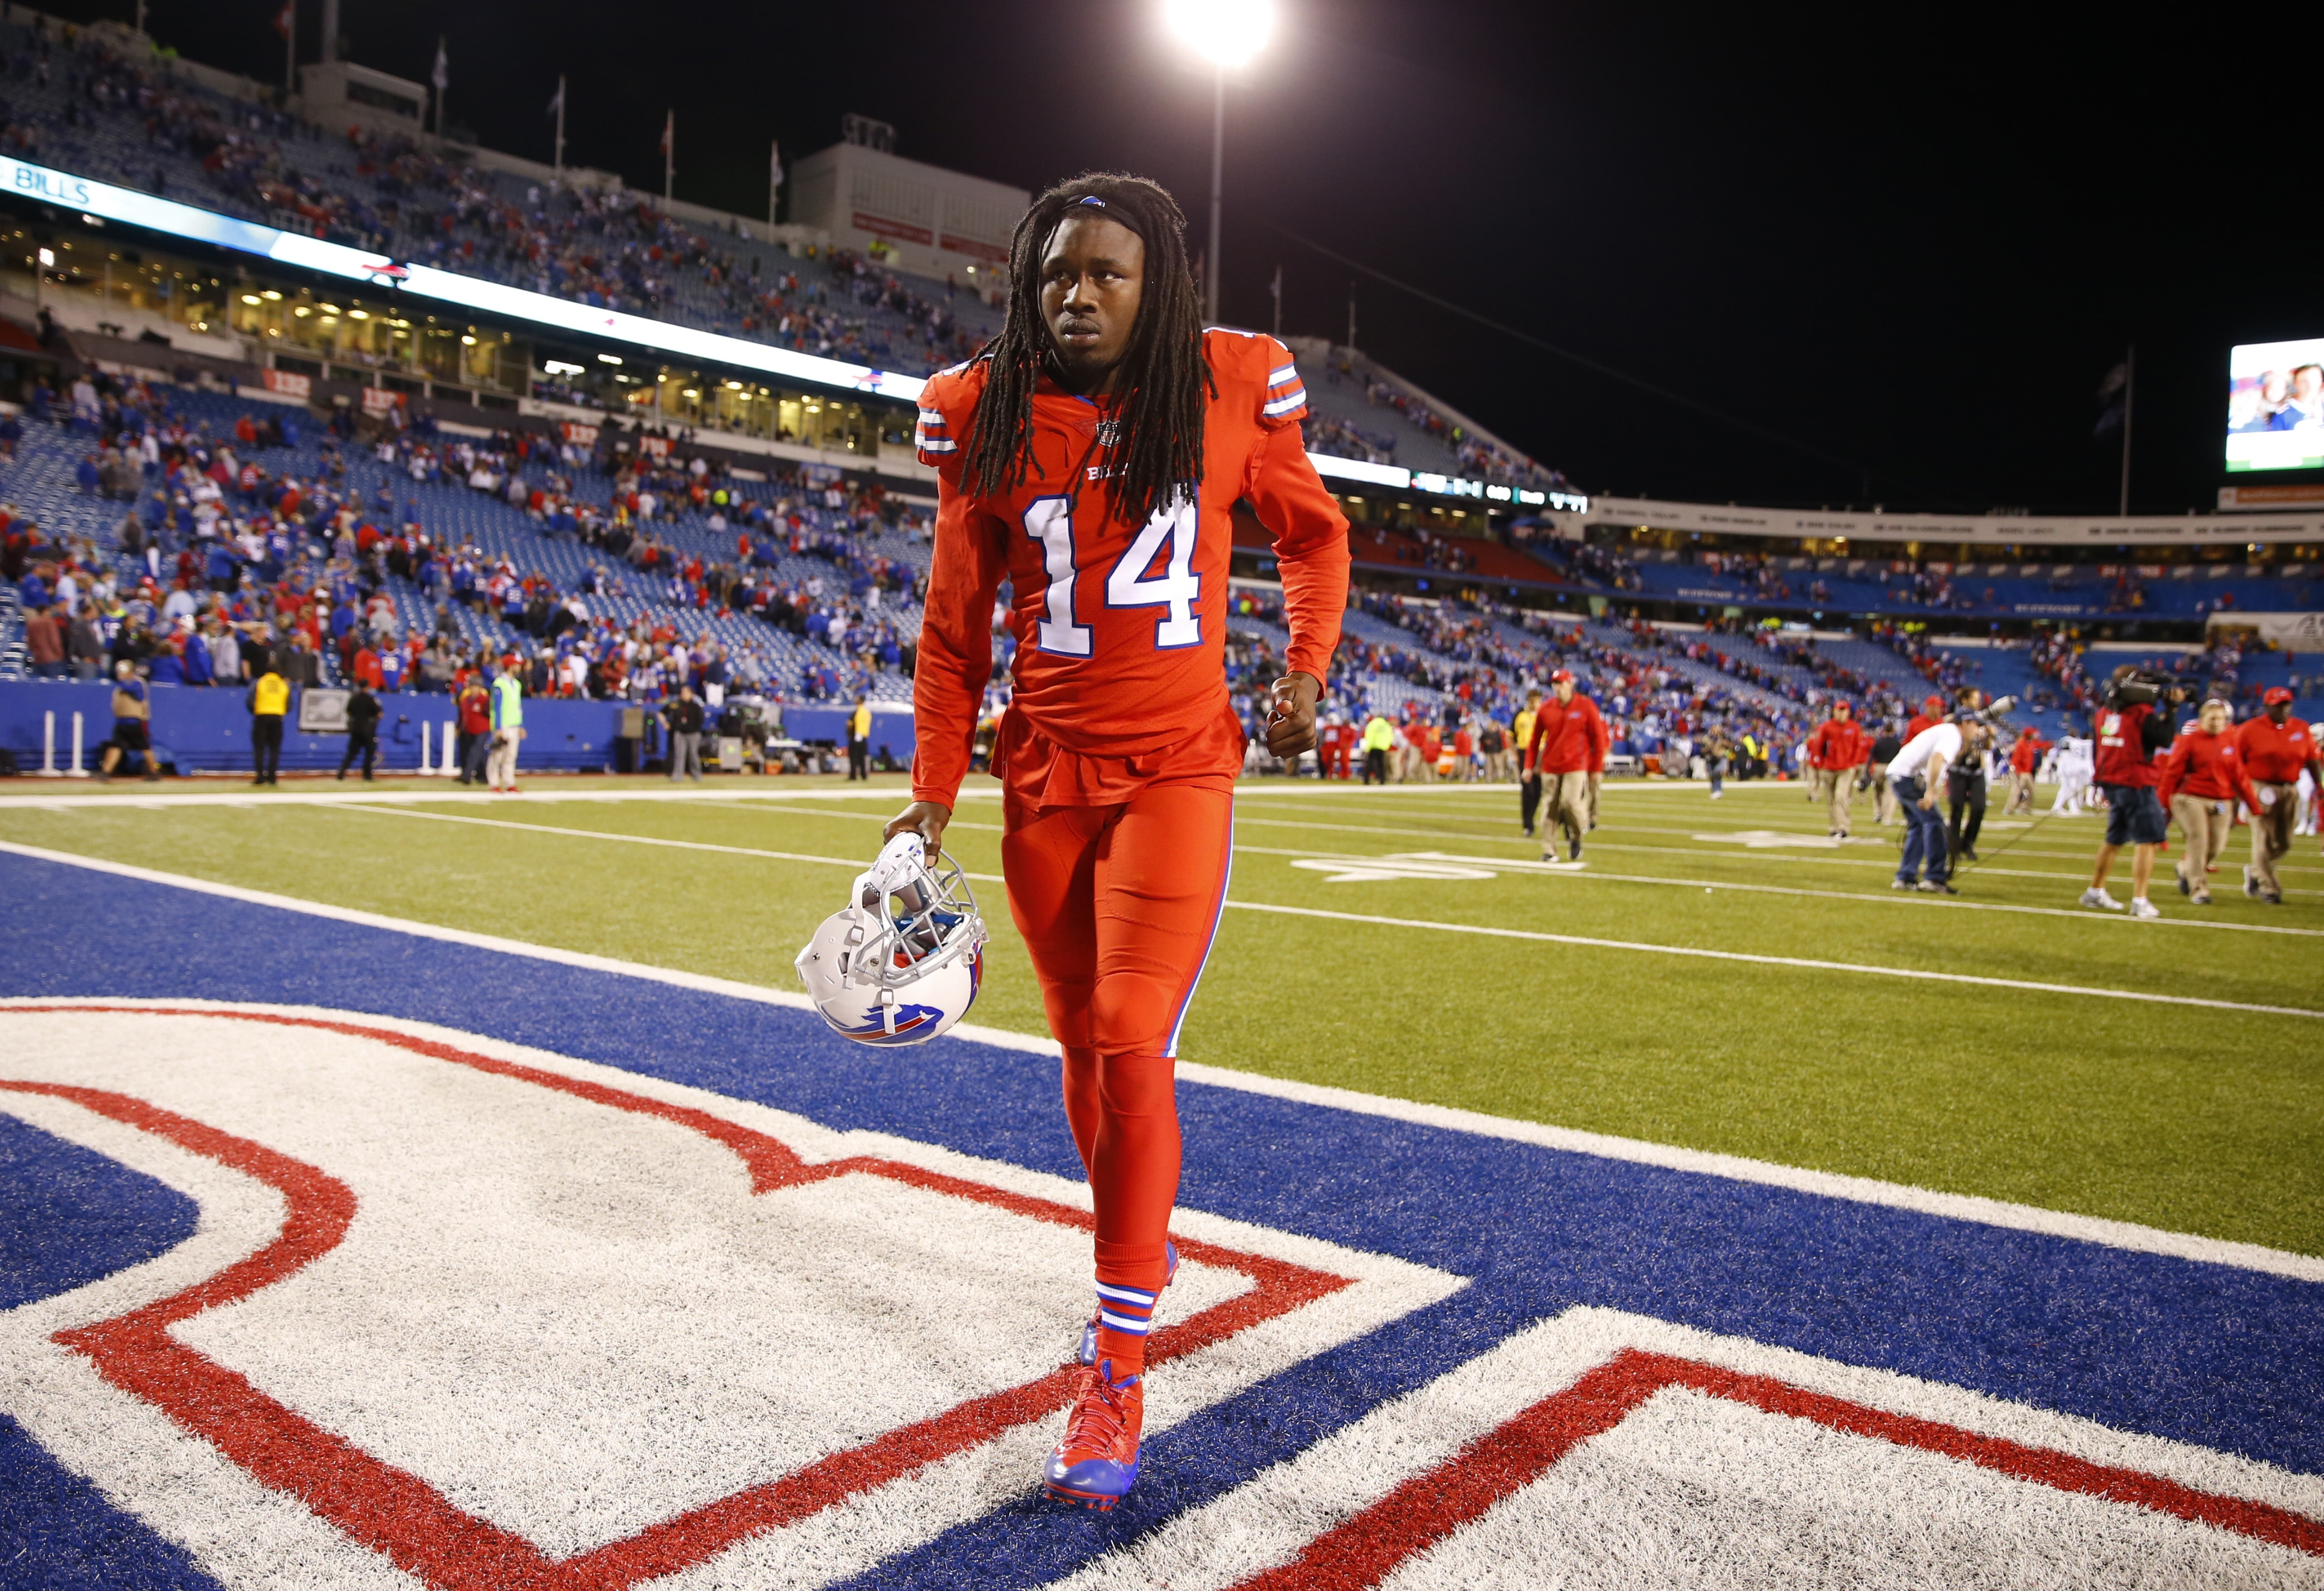 Buffalo Bills Sammy Watkins walks off he field after a loss to the New York Jets at New Era Field on Thursday, Sept. 15, 2016.  (Harry Scull Jr./Buffalo News)